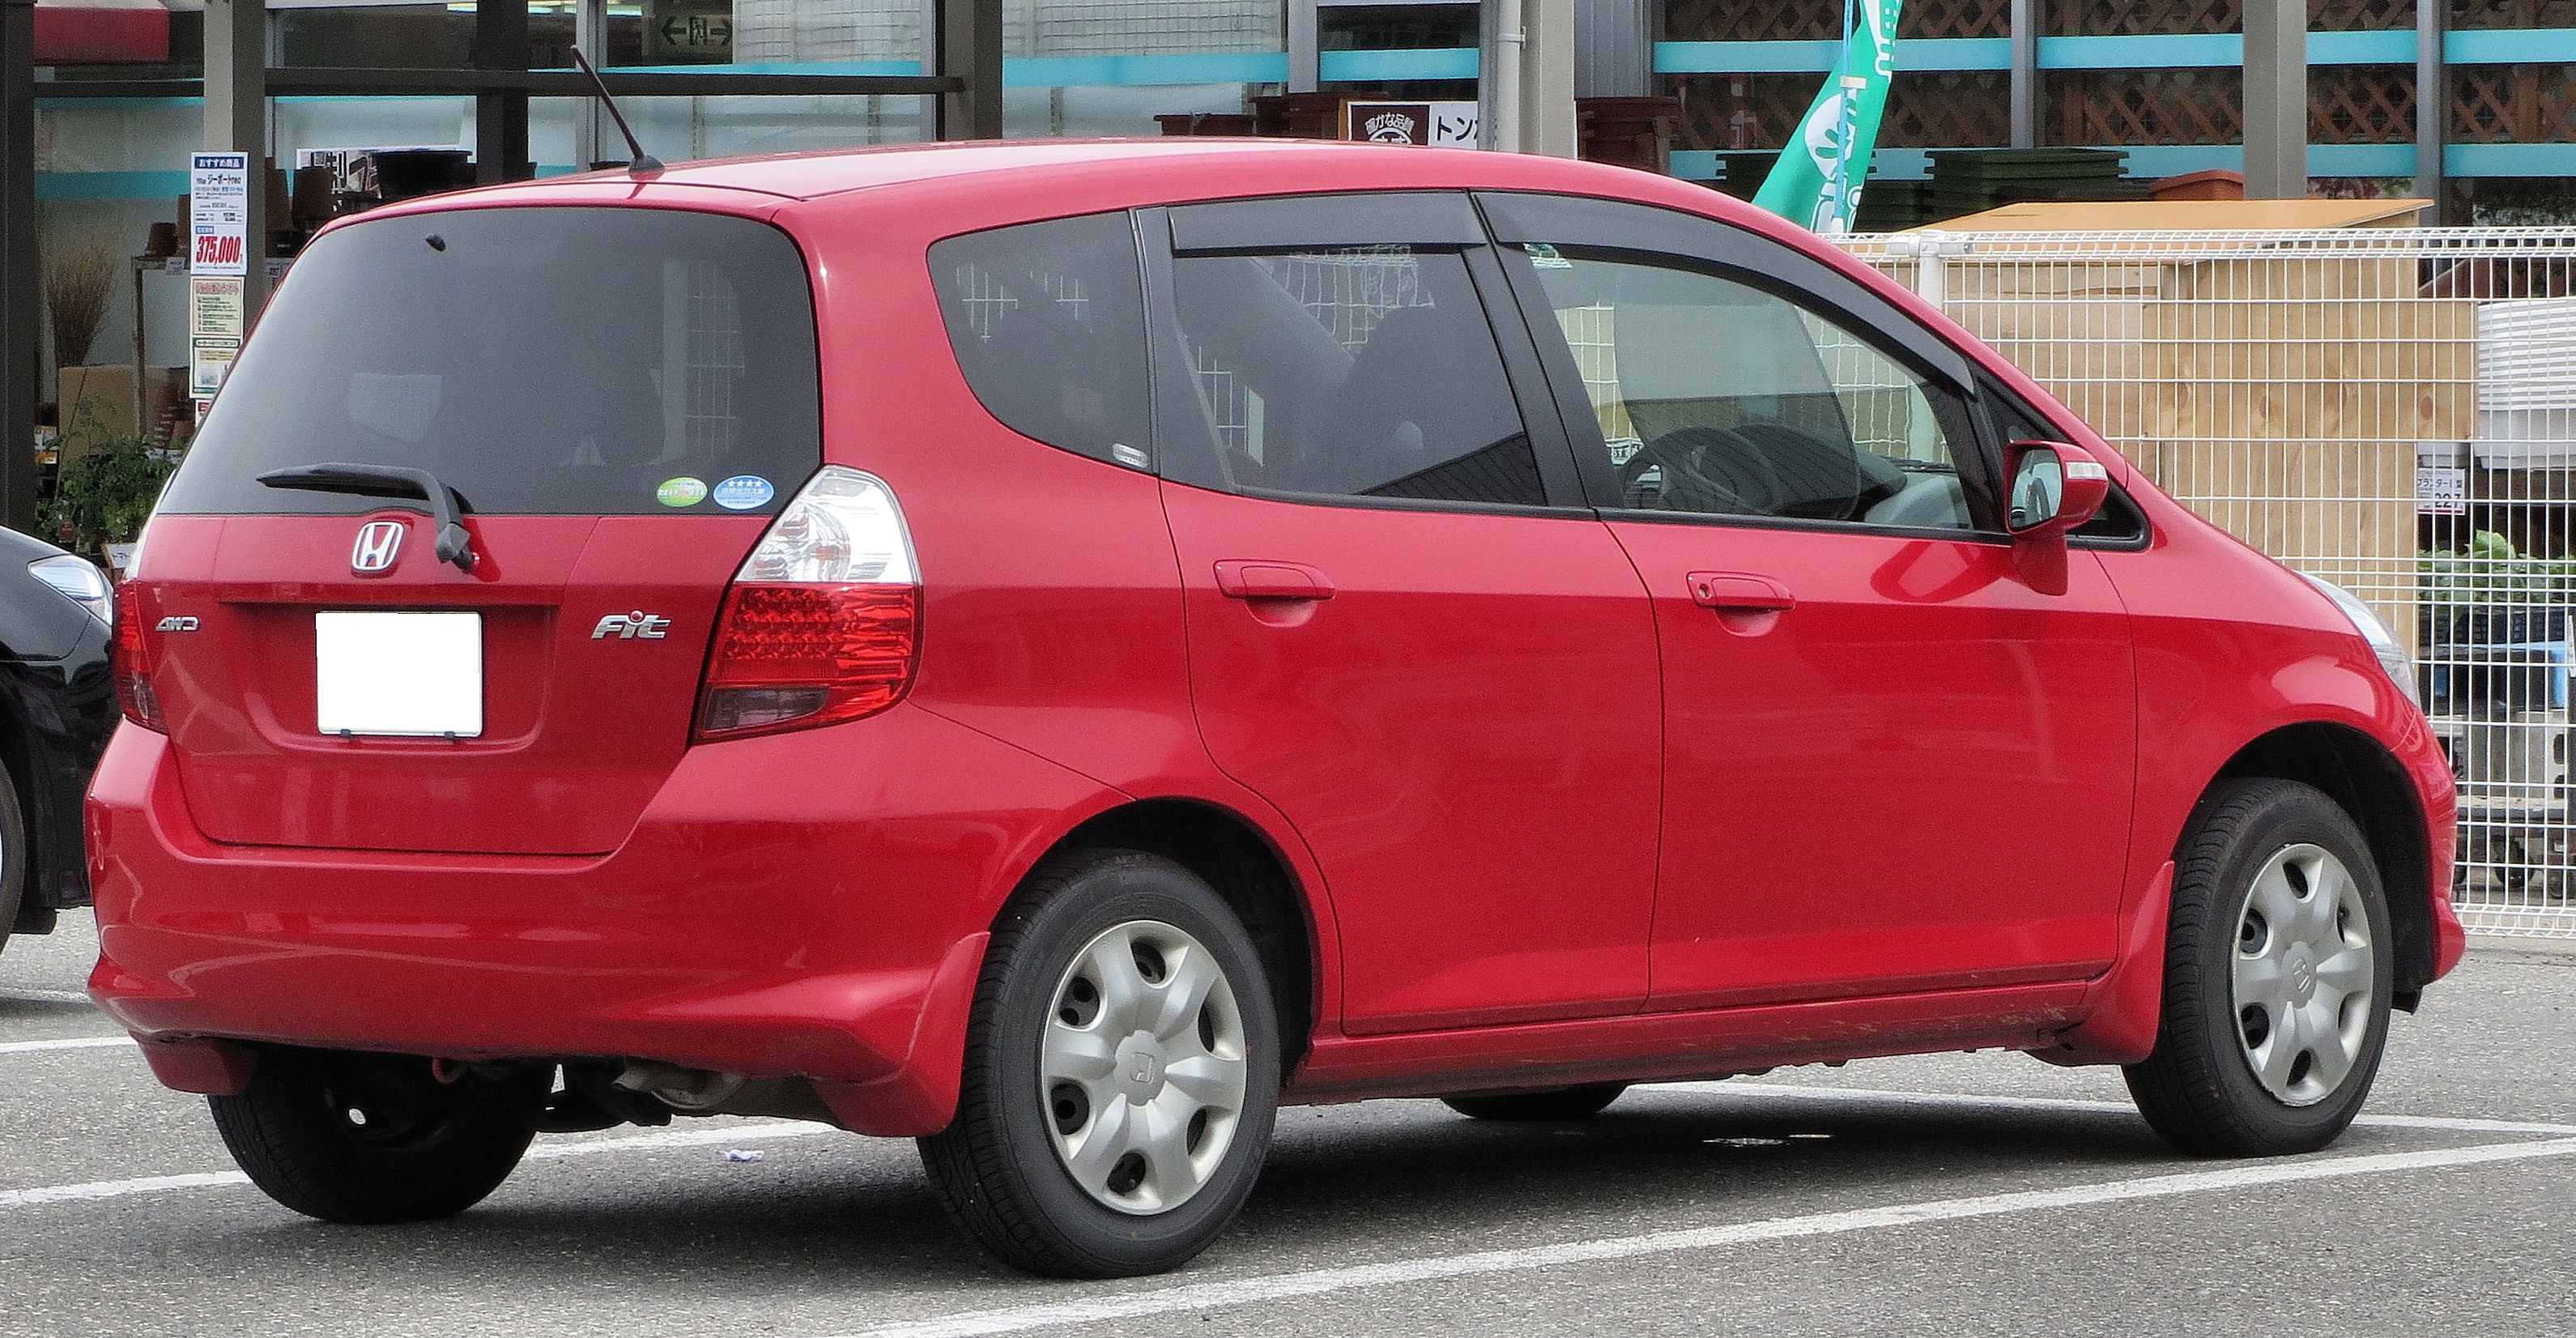 Jdm Spec Honda Fit